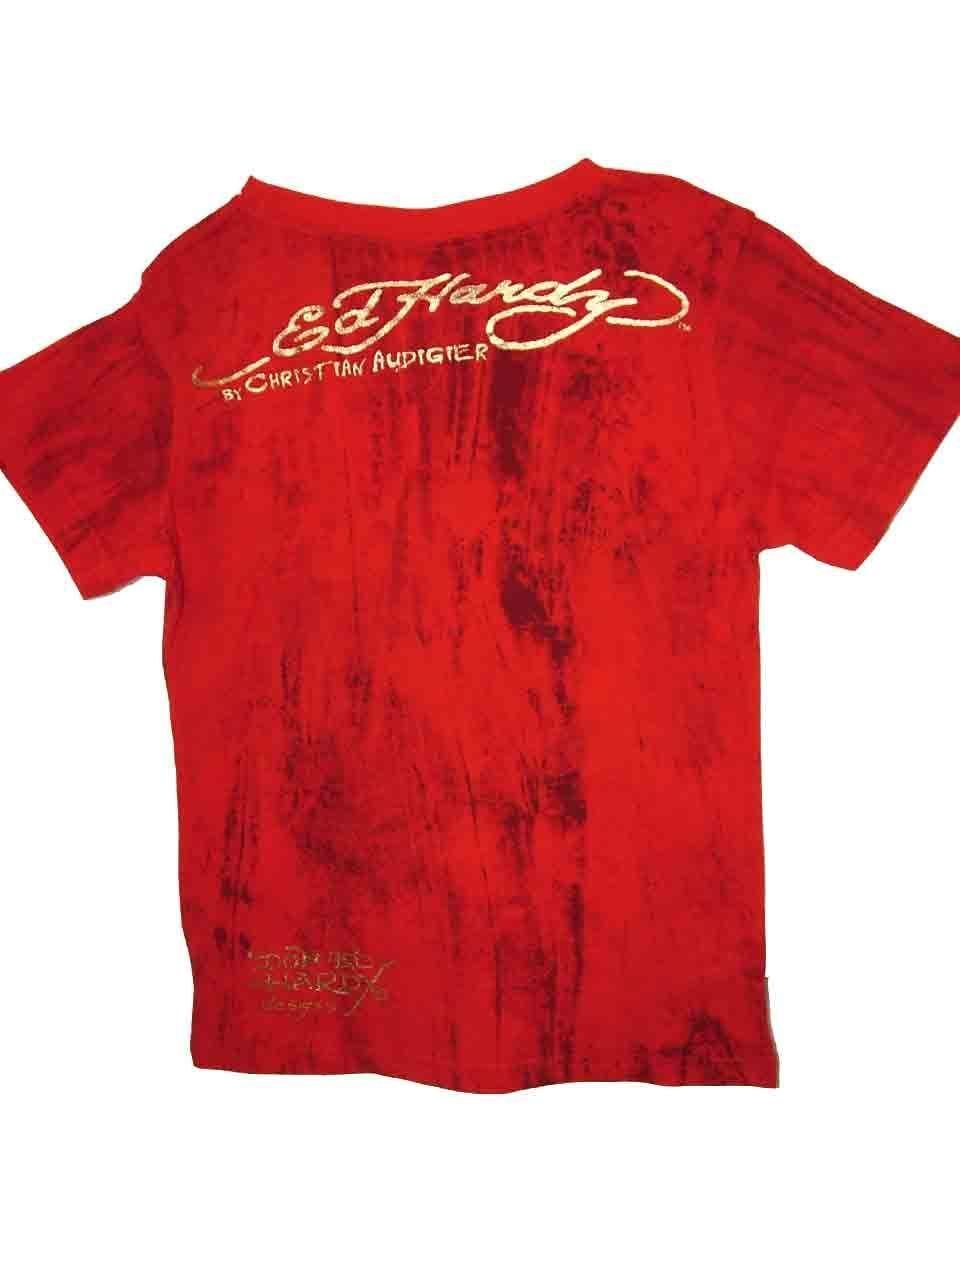 Image 3 of Ed Hardy Boys Bright Red Cotton Marble Tee Shirt - Lion Motif, Short Sleeve